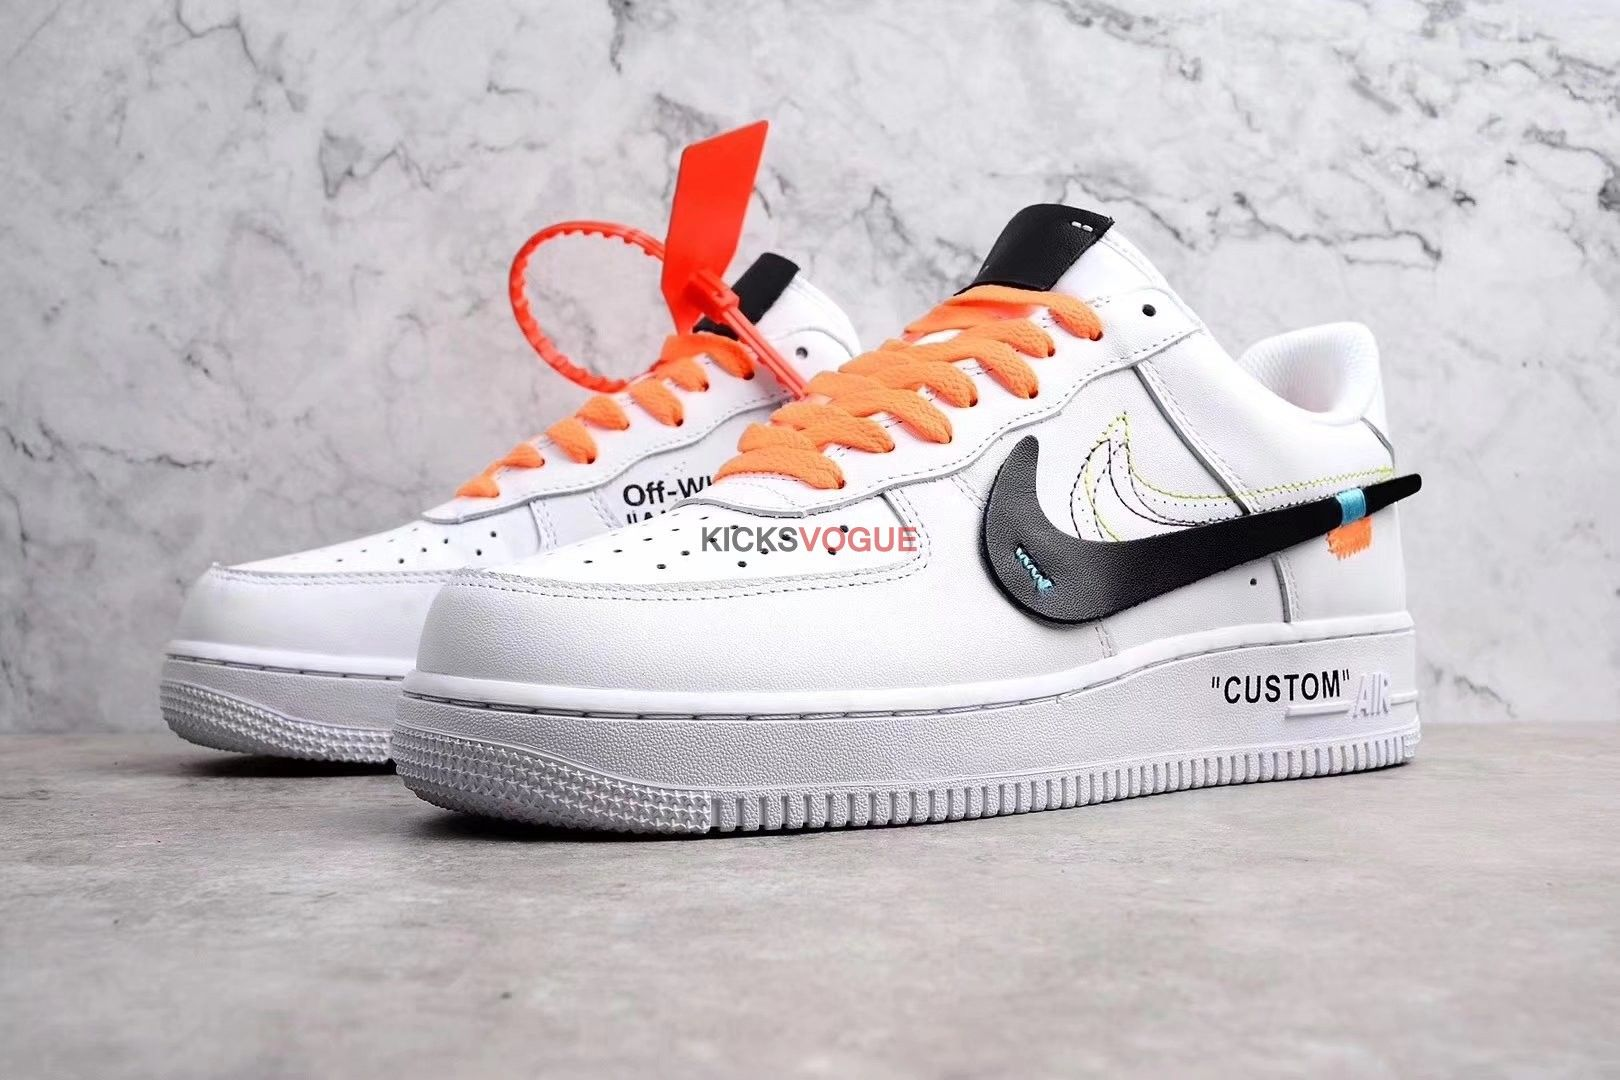 premium selection 2ecf5 20c05 Virgil Abloh OFF WHITE x Nike air force 1 Low White Custom